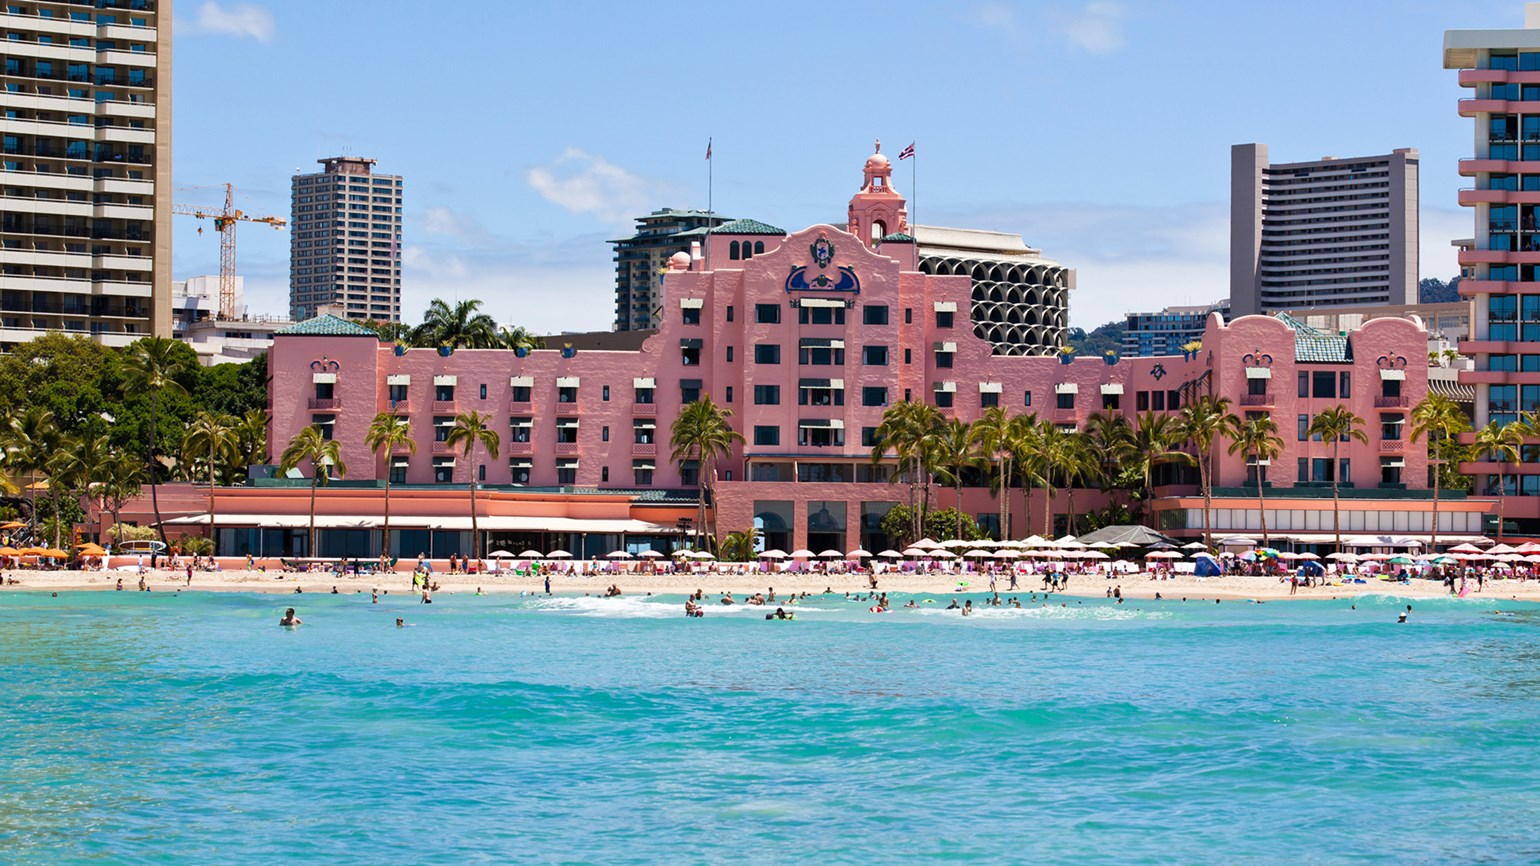 26 To Protest A Decision By Kyo Ya Hotels And Resorts Subcontract Concierge Services At The Royal Hawaiian Pictured